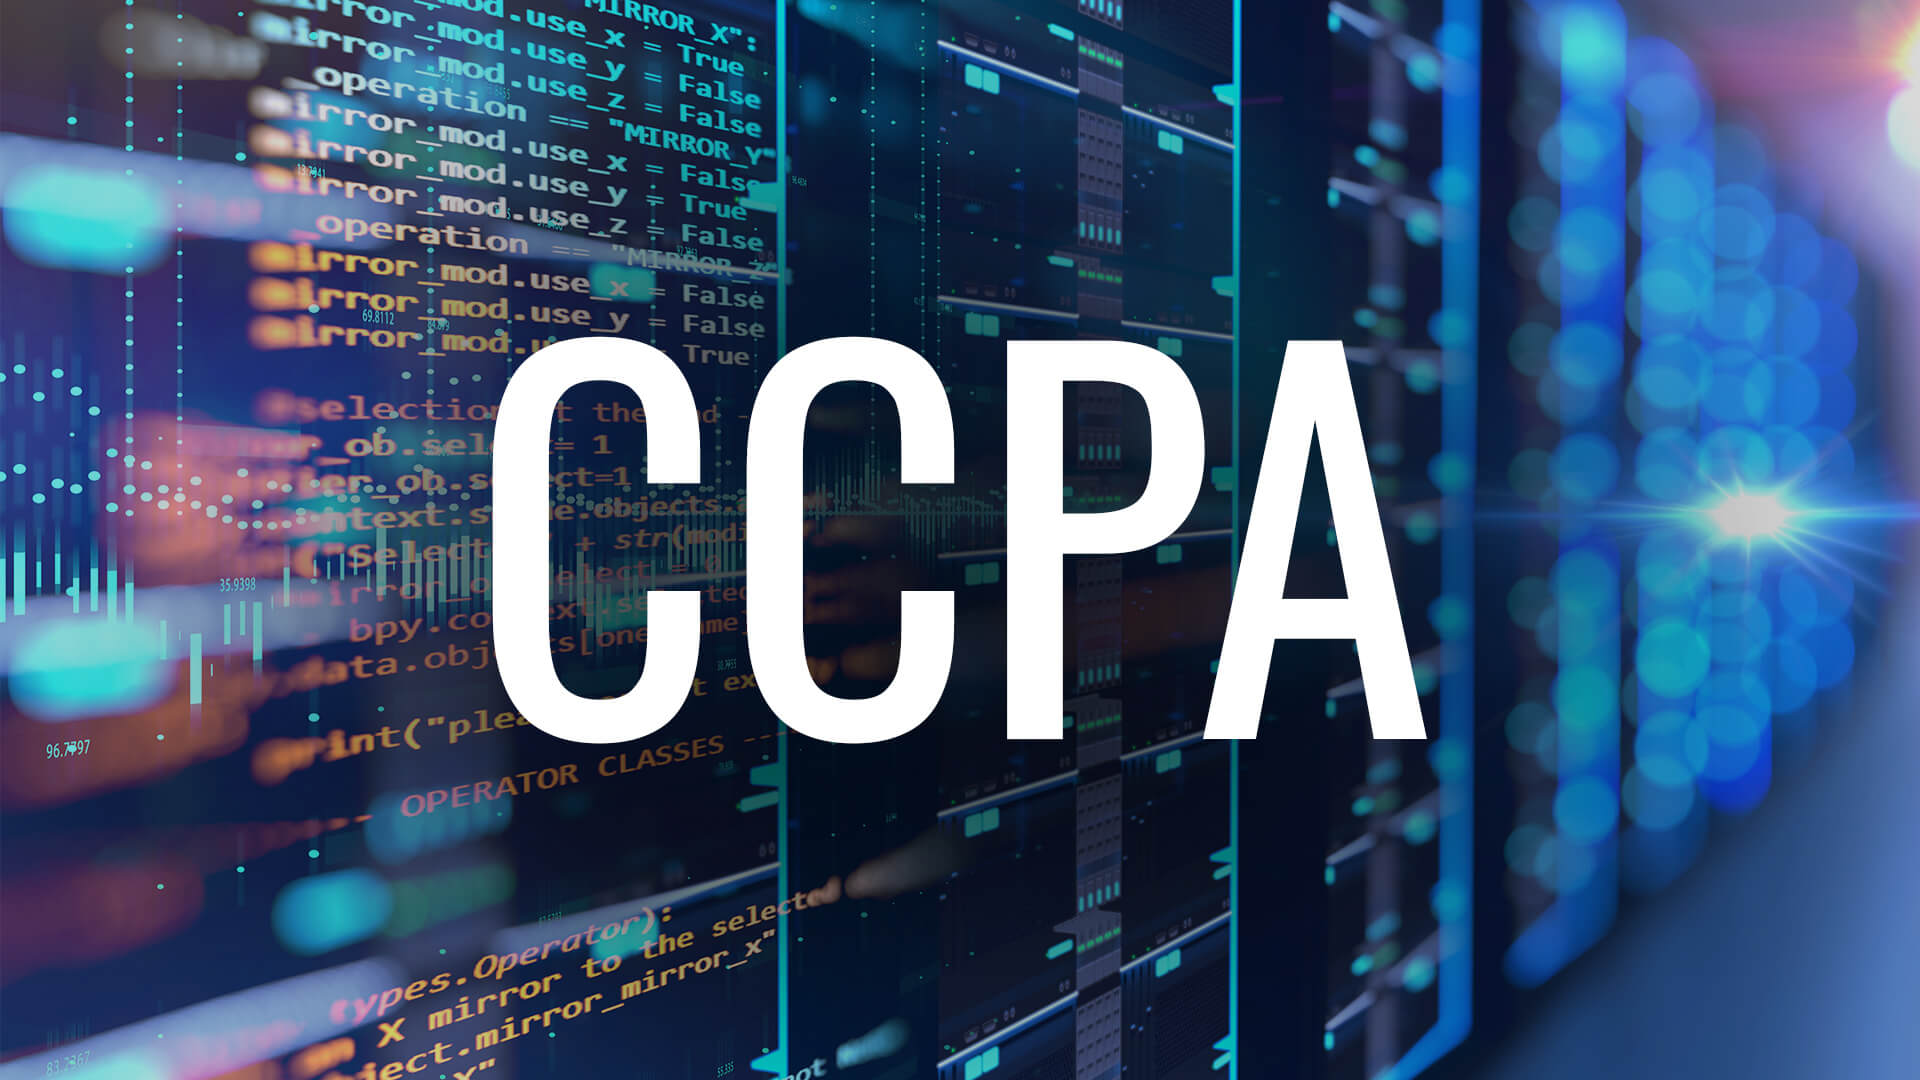 CCPA Enforcement